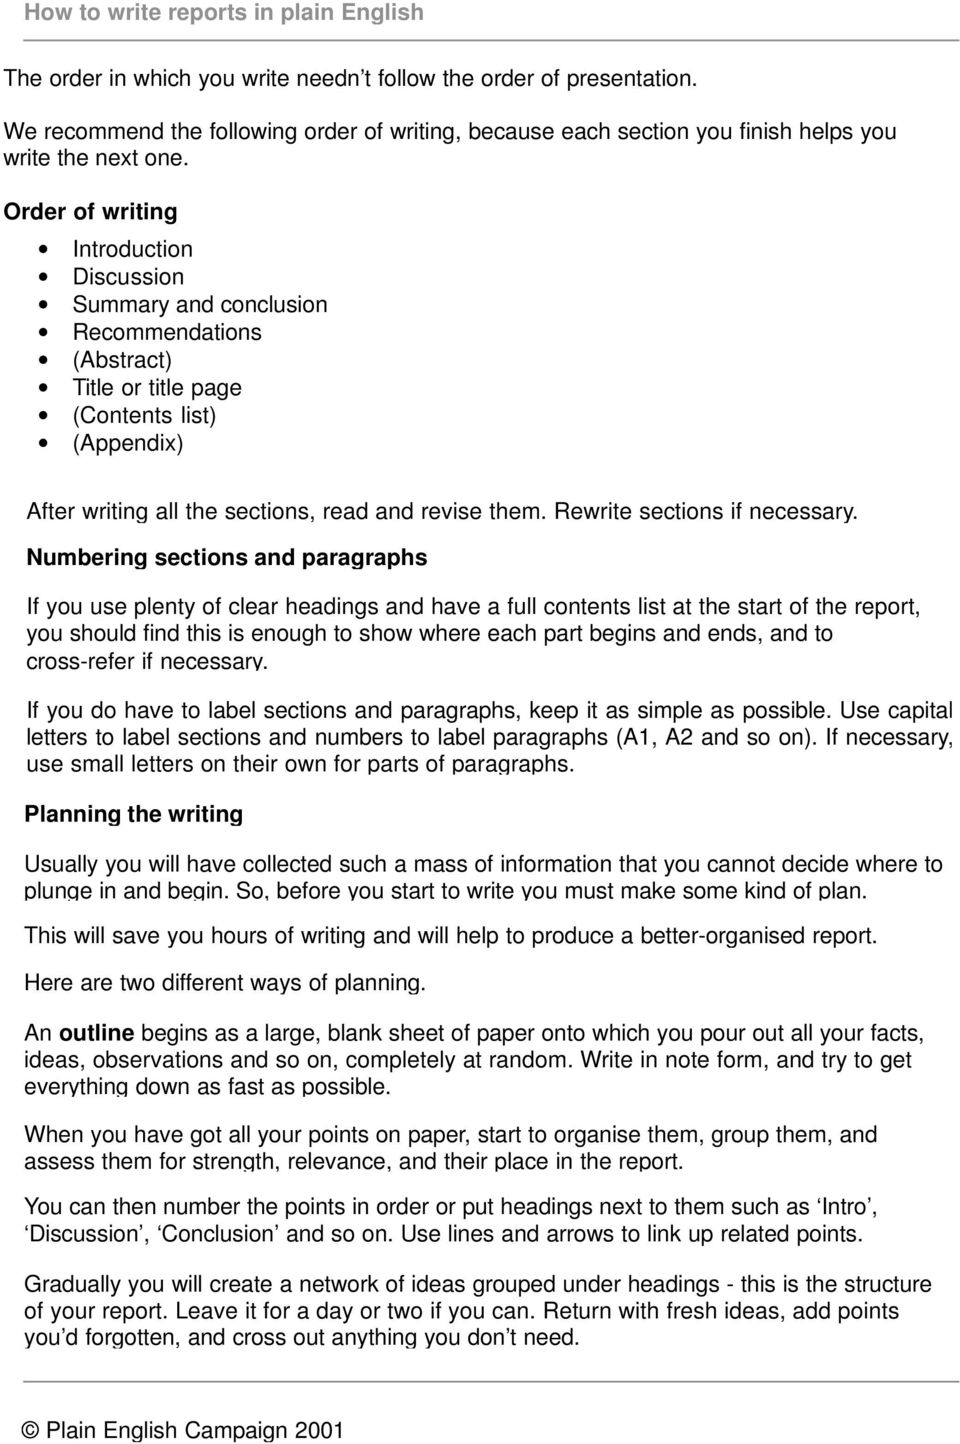 How to write reports in plain English  How to write reports in plain